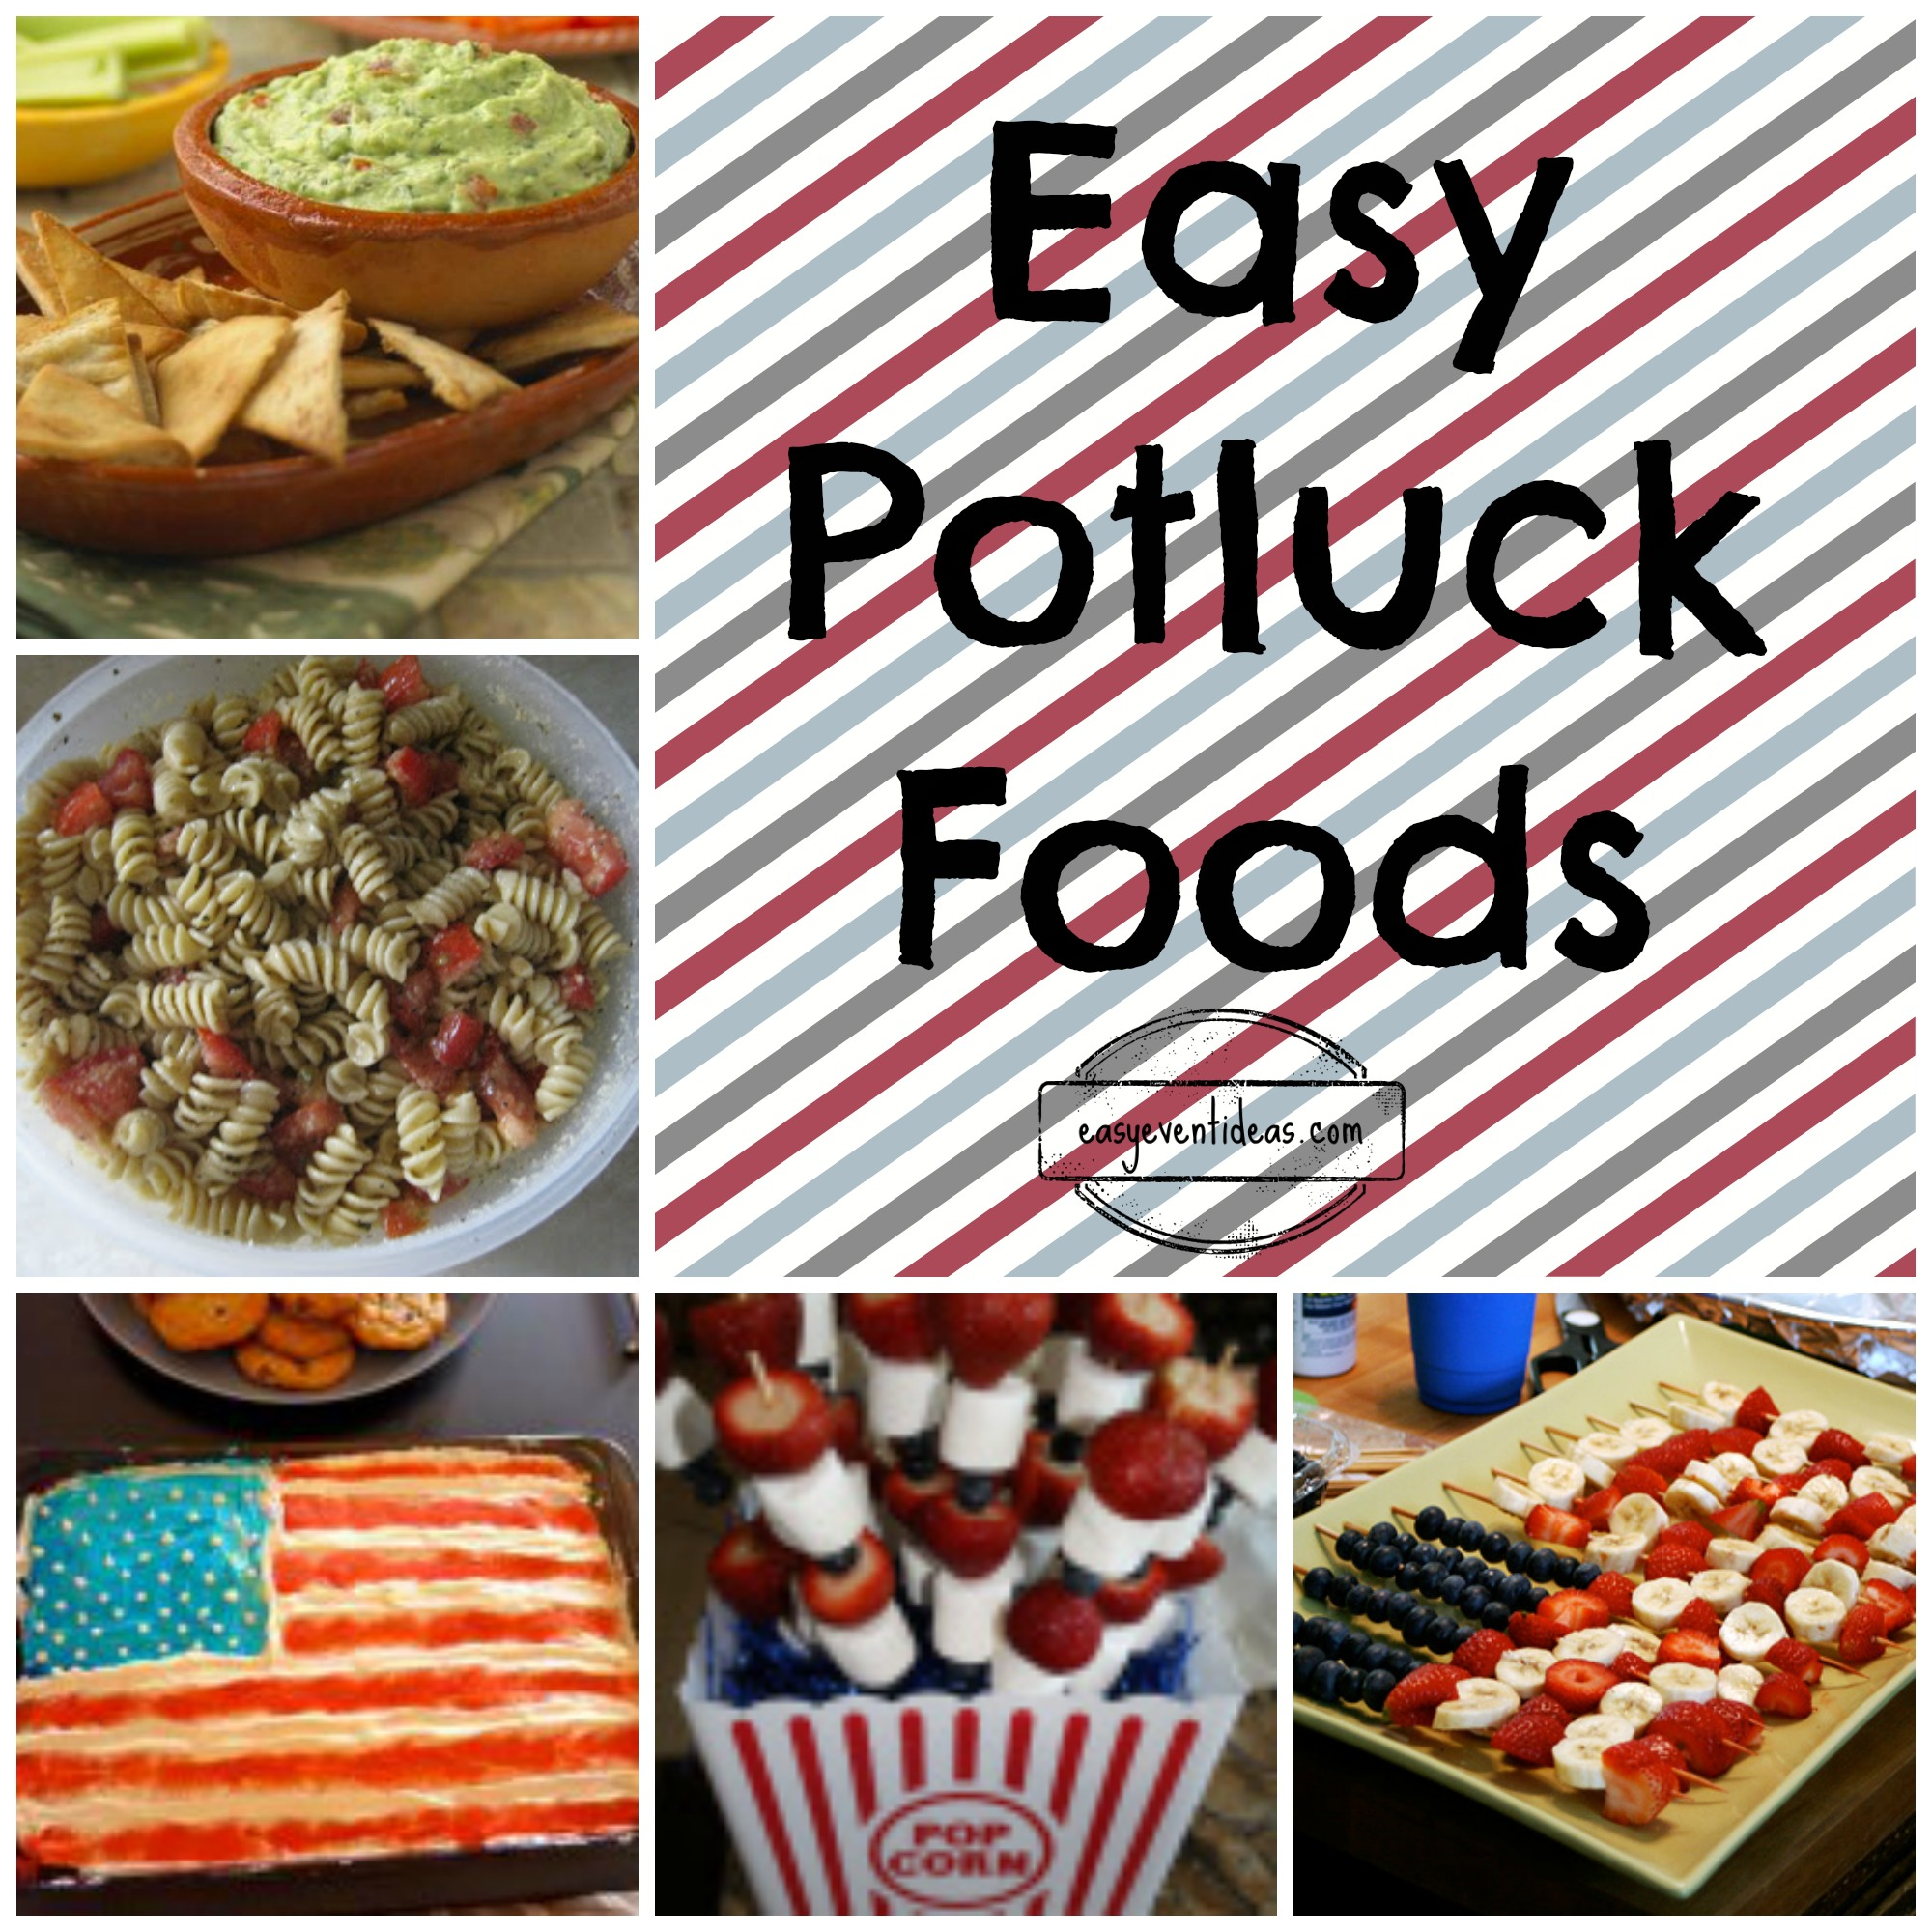 40 Easy Potluck Recipes For Your Graduation Party: Easy Potluck Food